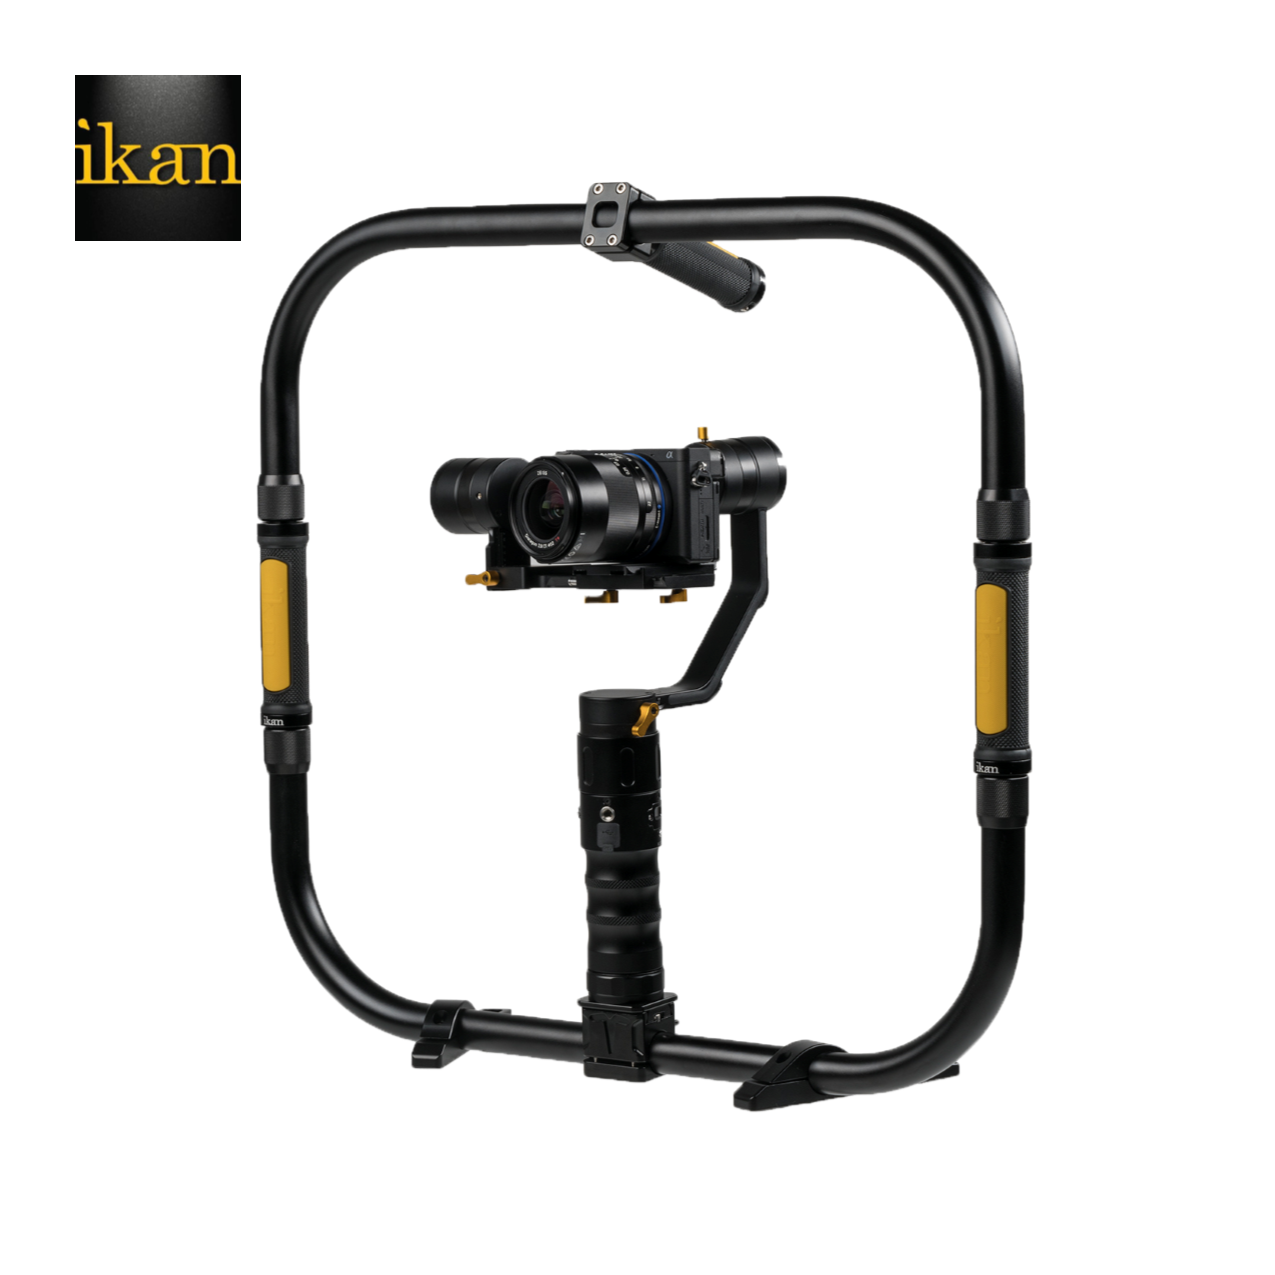 Ikan EC1 GIMBAL RING KIT Camera Gimbal Stabilizers Camera Support